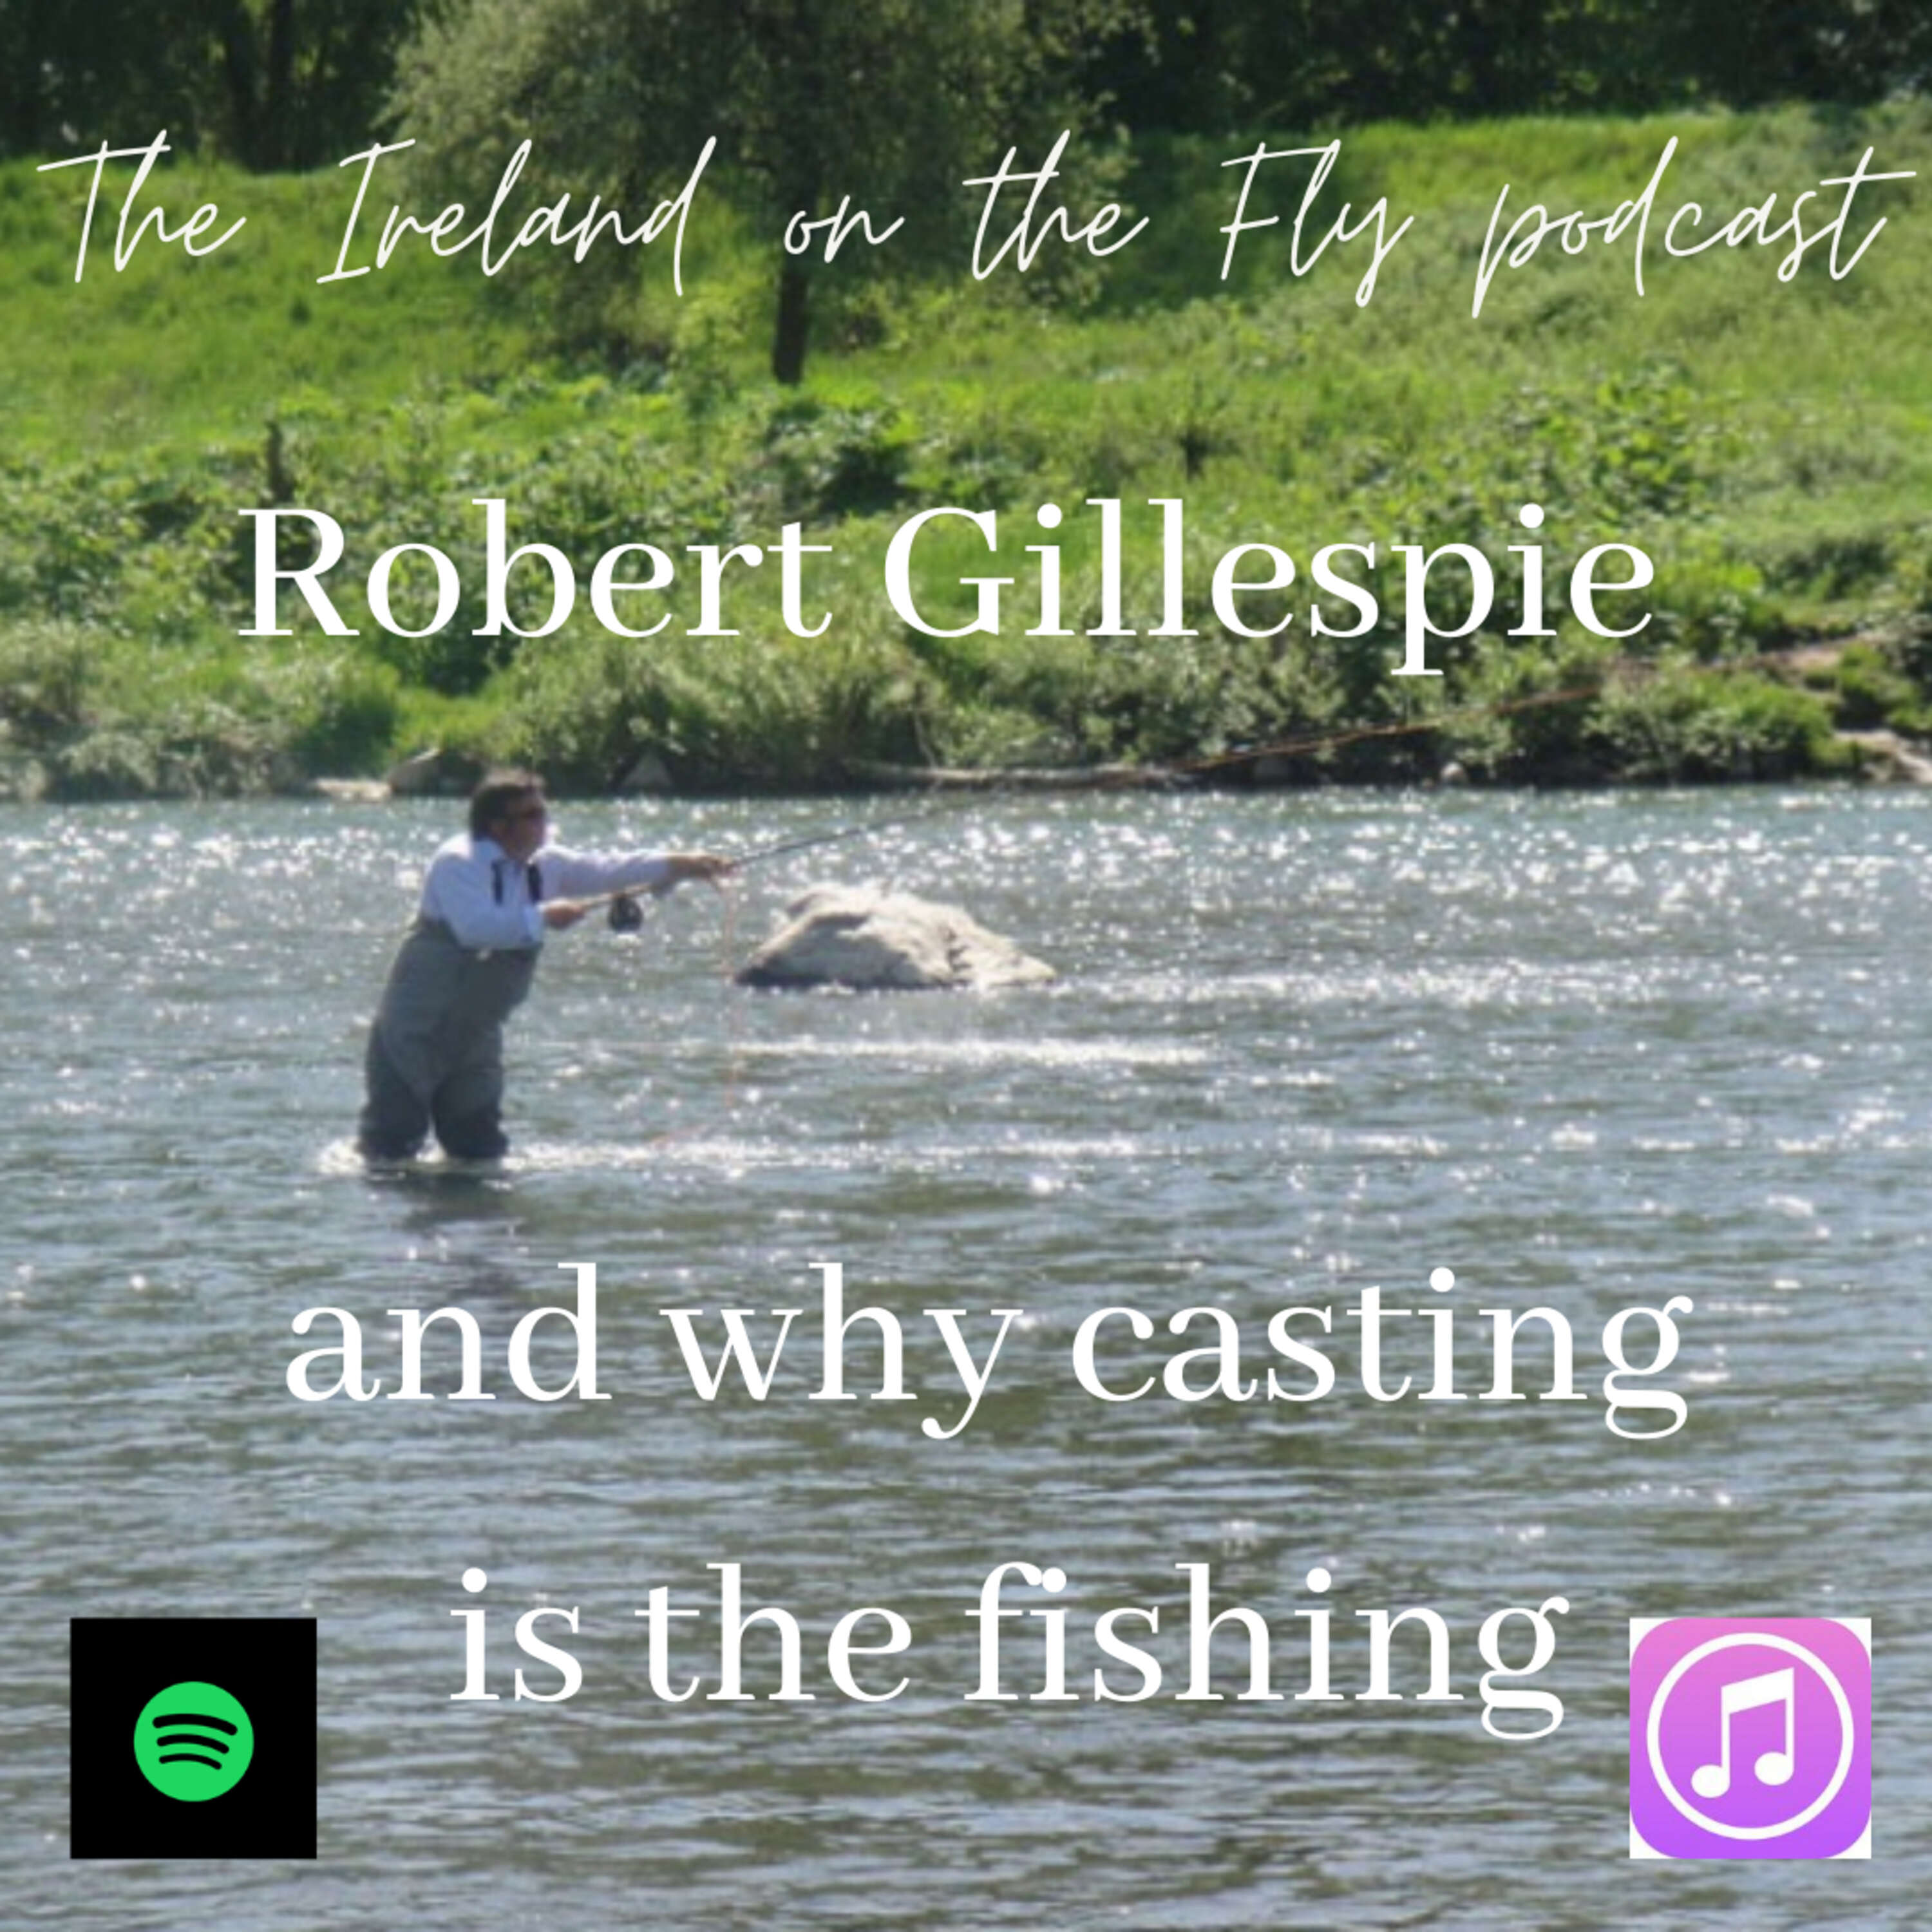 Robert Gillespie and why casting is the fishing